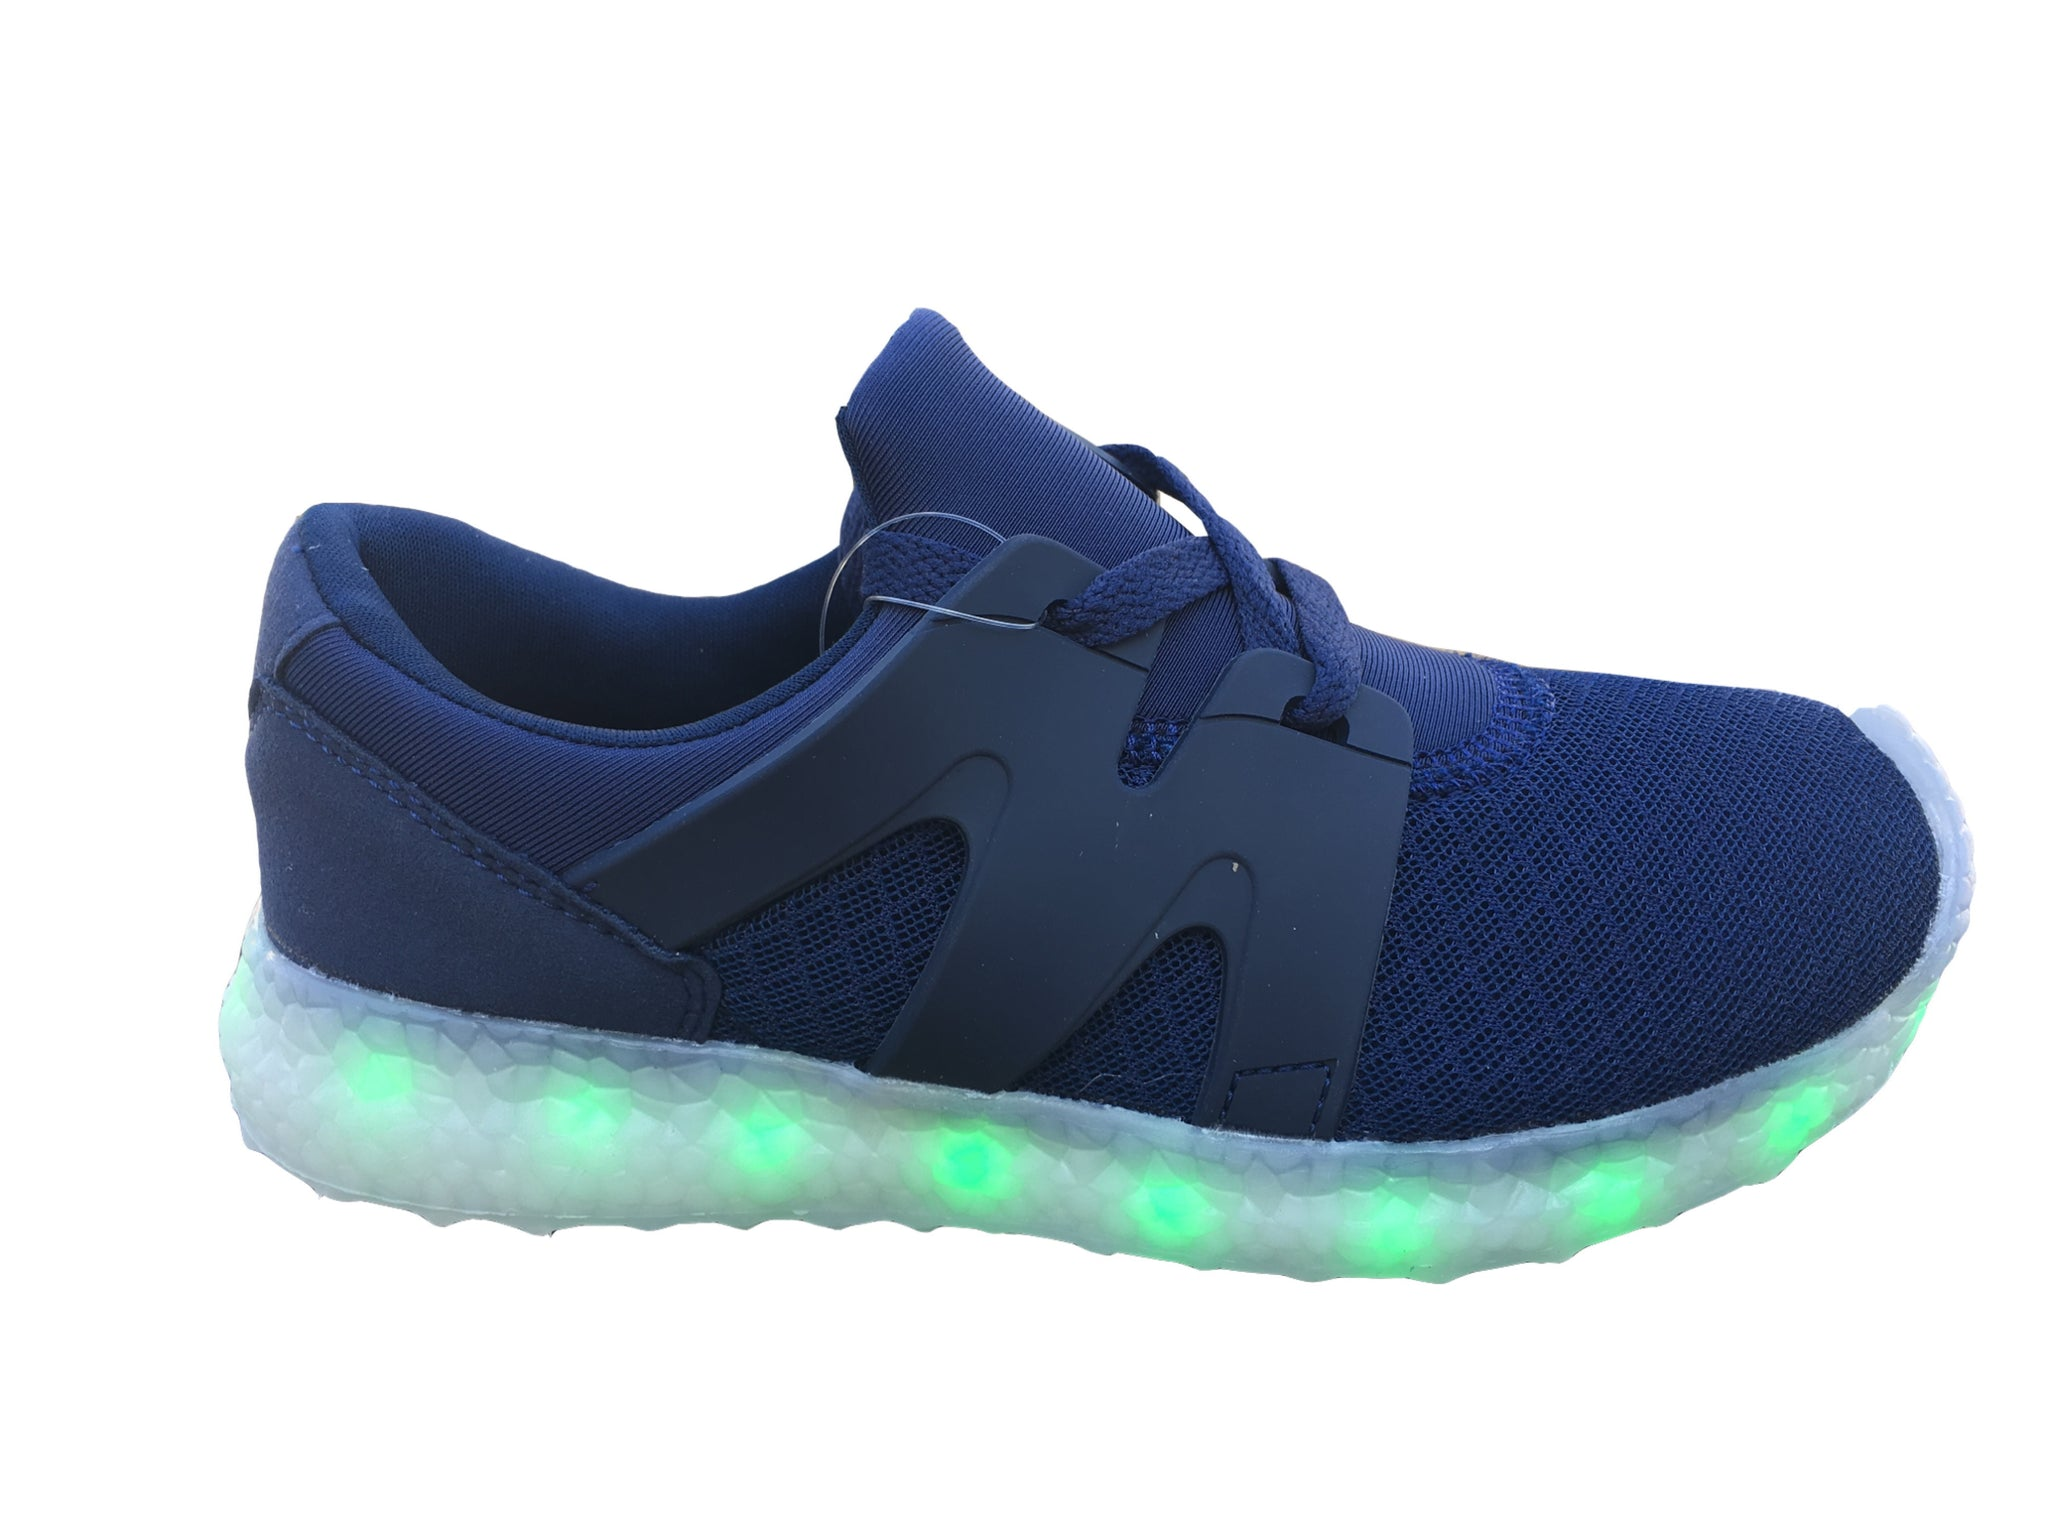 LED Light Up Woven 2017 Style Shoes - Blue G51BL - Ledkers